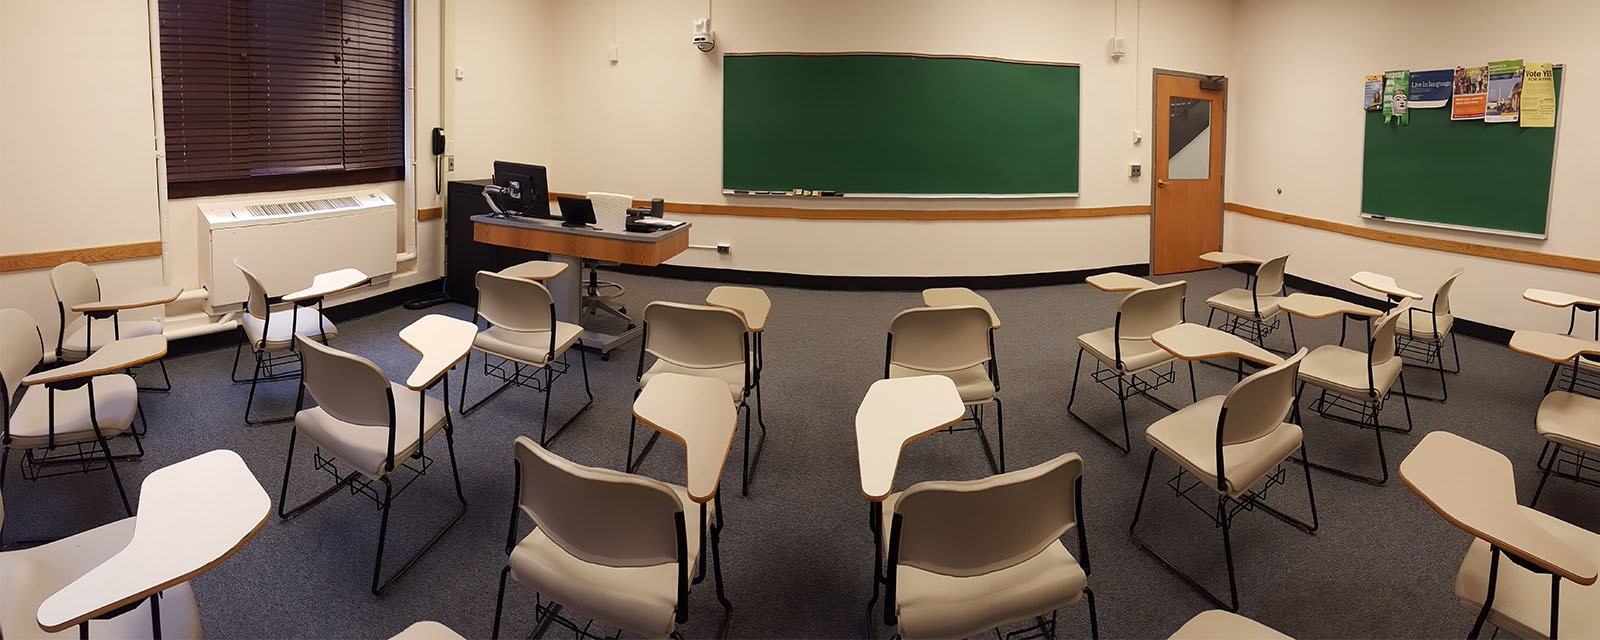 Panorama Bowne 108 from back of room to front of room, chairs moveable with desks attached, teaching station directly across from door.